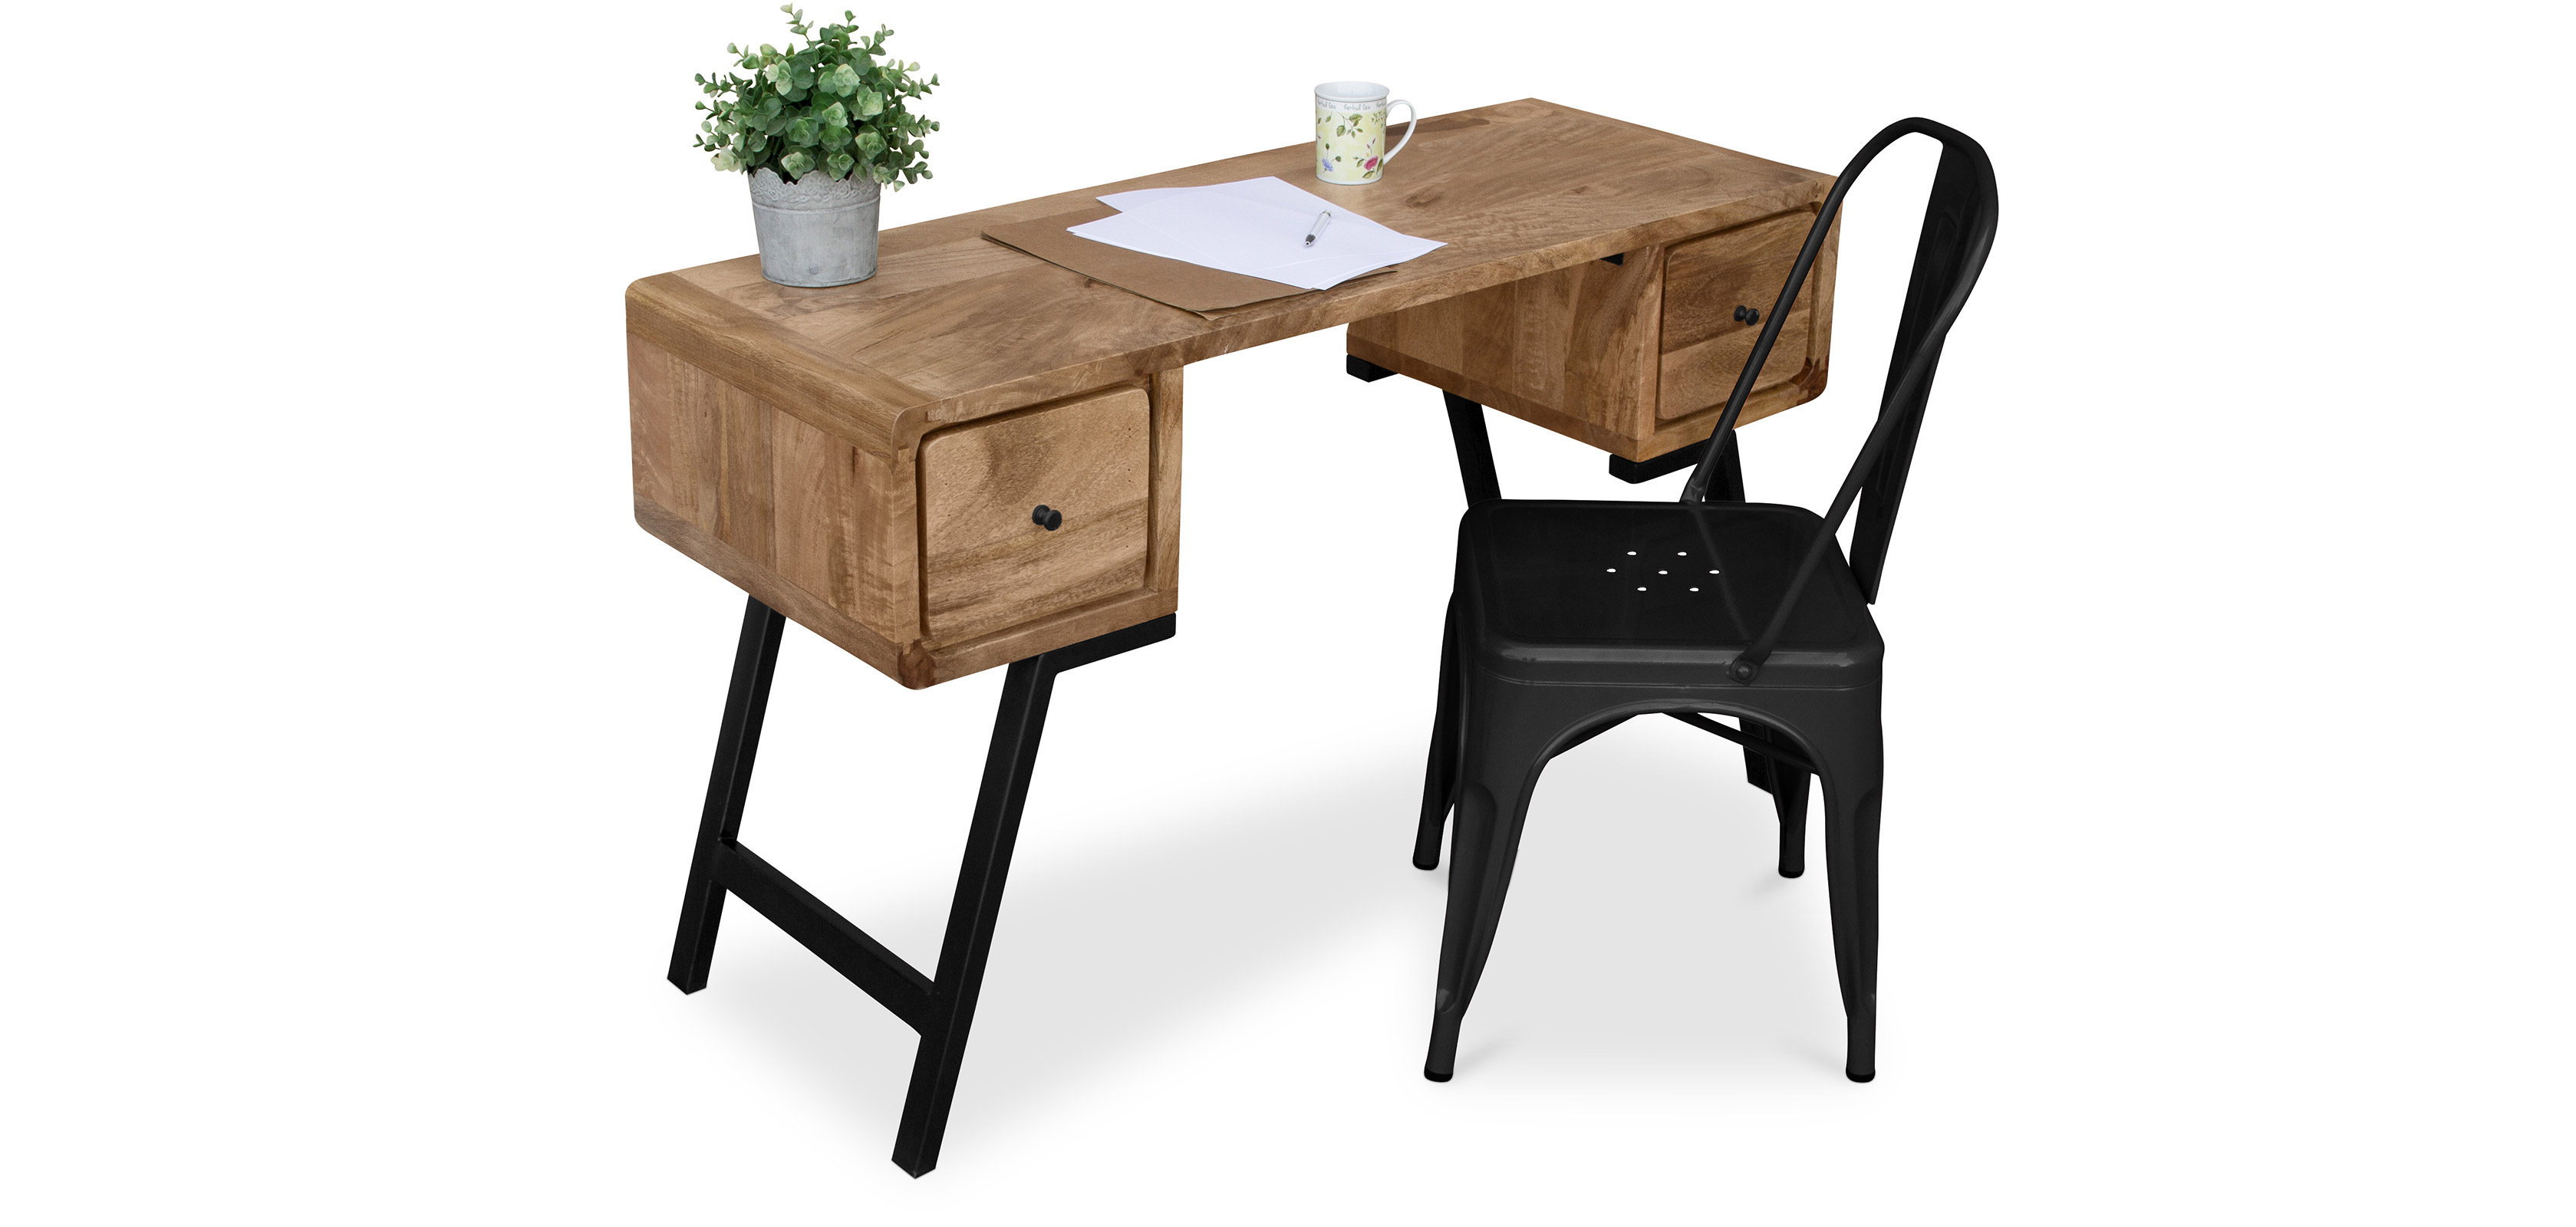 industrial stil designer recyceltes holz schreibtisch jason. Black Bedroom Furniture Sets. Home Design Ideas